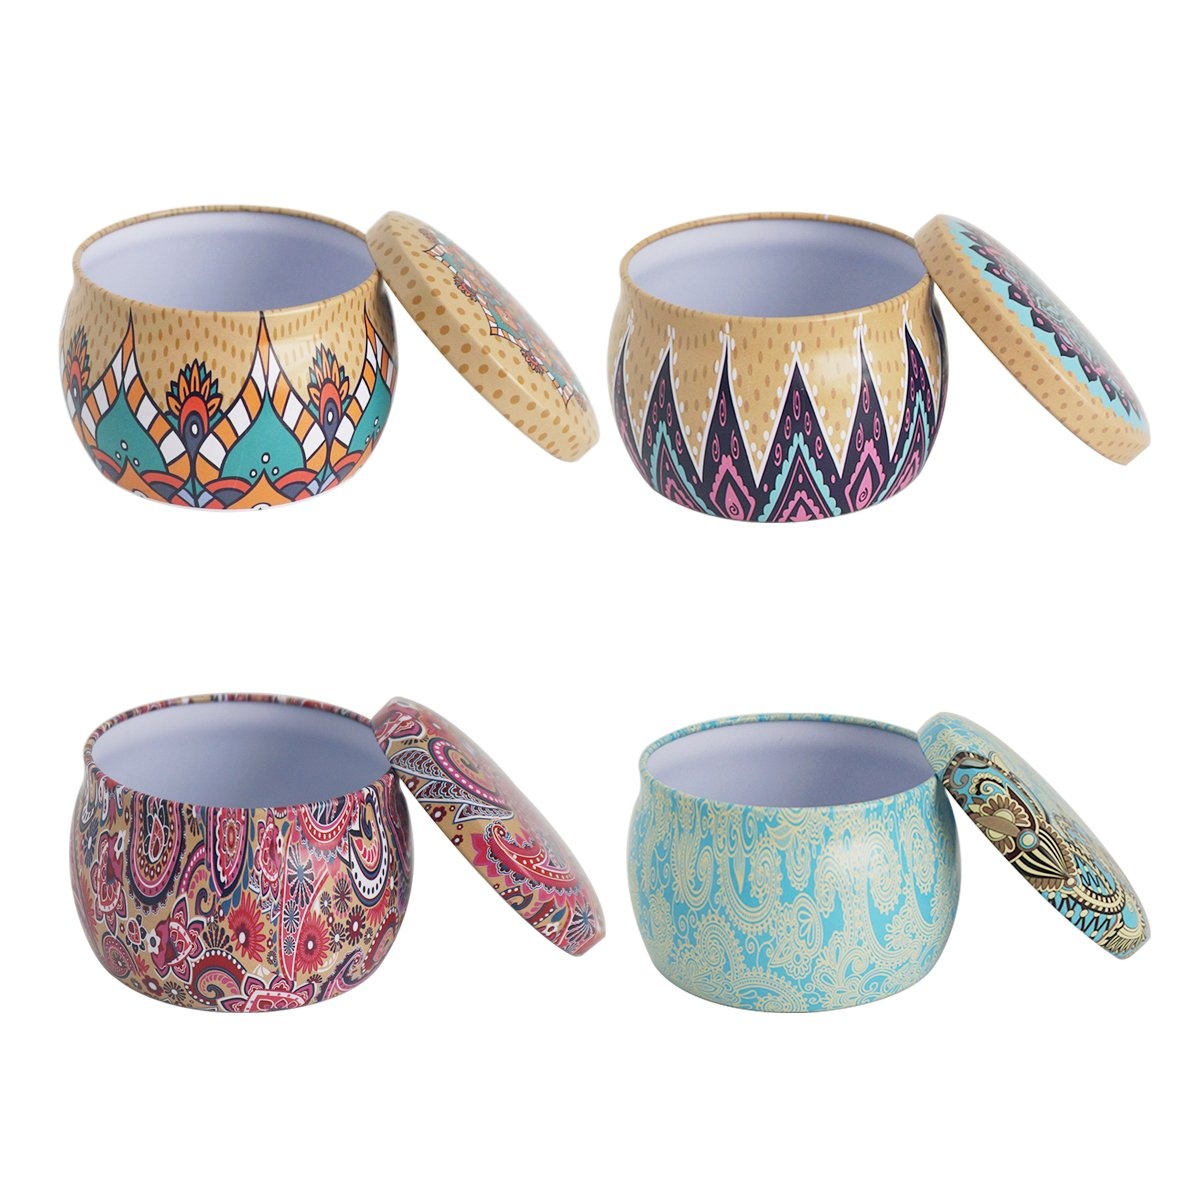 Misscrafts 4pcs Candle Tin Jars Empty Reusable Tin Cups Candy Containers for DIY Homemade Tealights Dry Storage Spices Party Favors Sweets Gifts 6oz